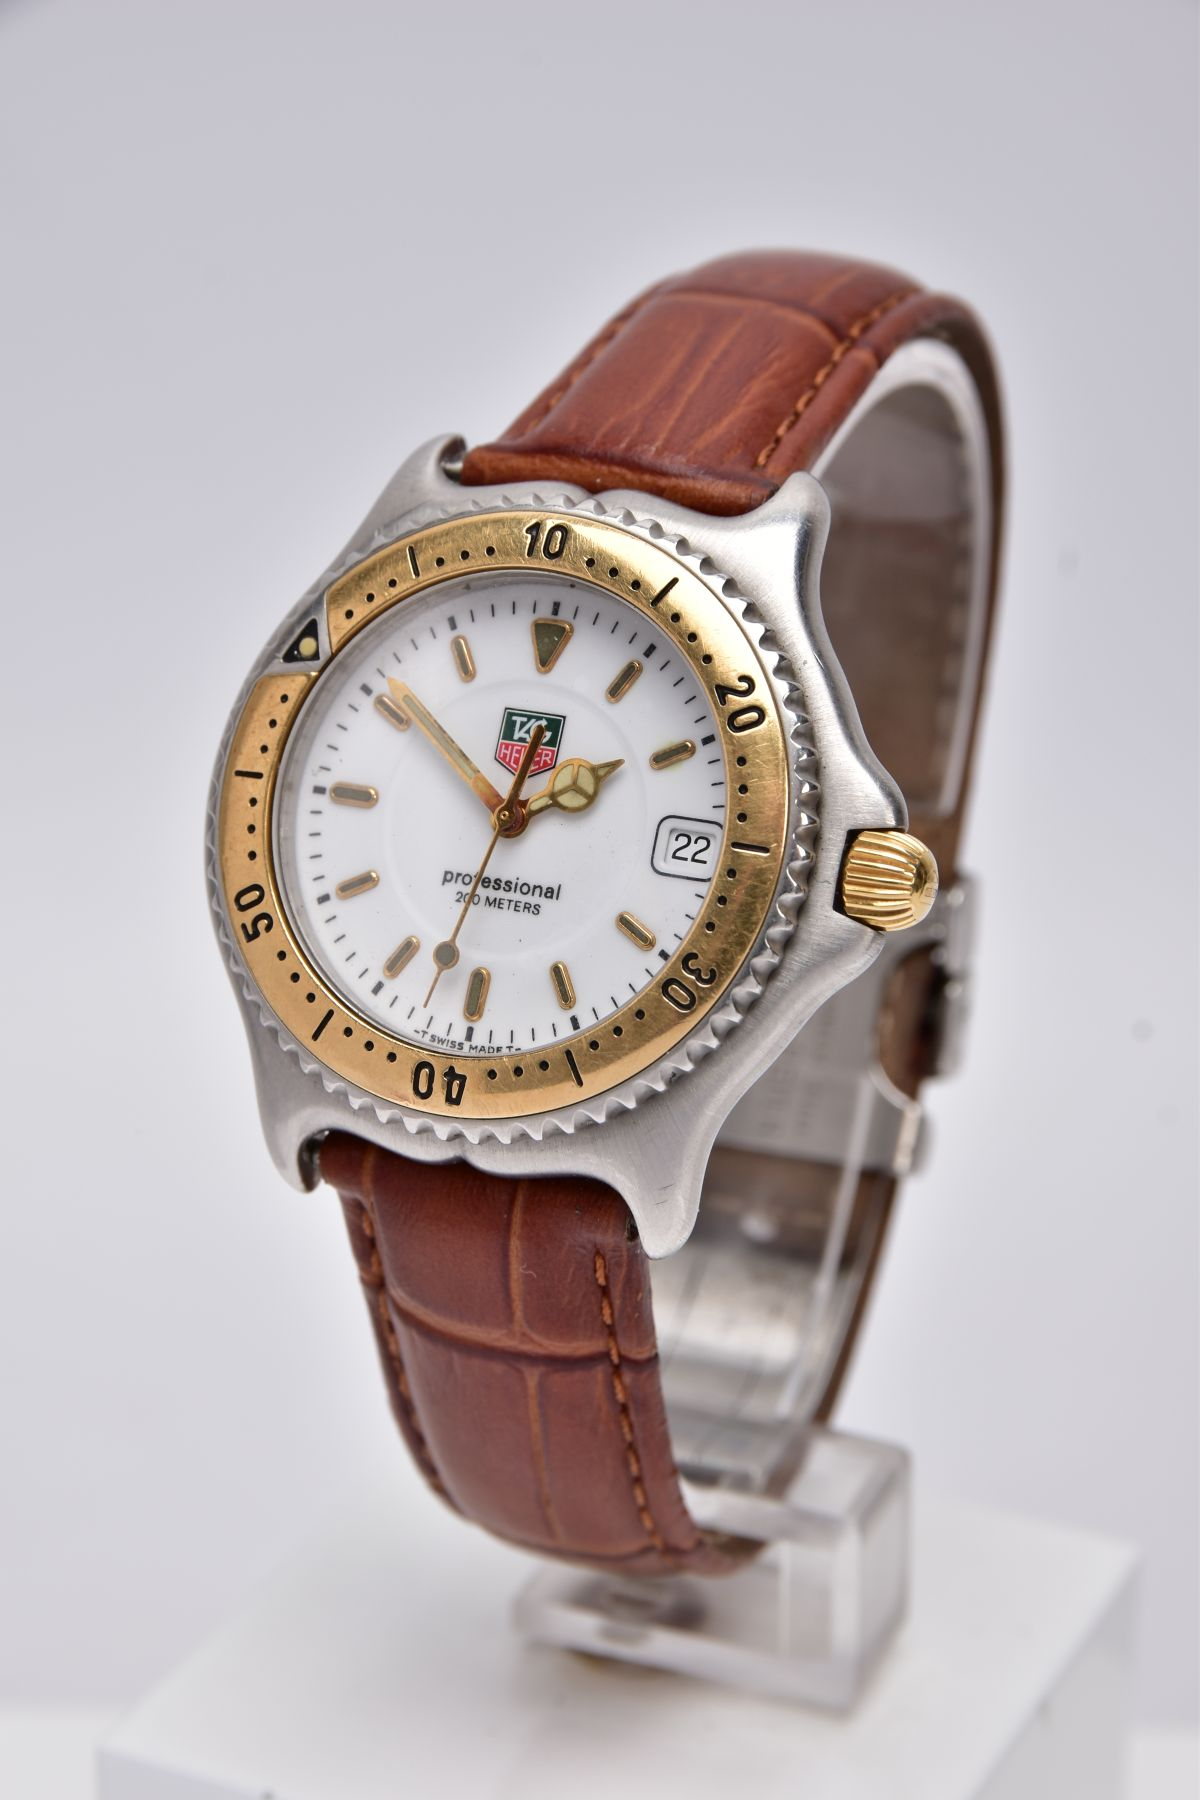 A GENTS 'TAG HEUER' WRISTWATCH, round white dial signed 'Tag Heuer, Professional 200 meters', - Image 3 of 6